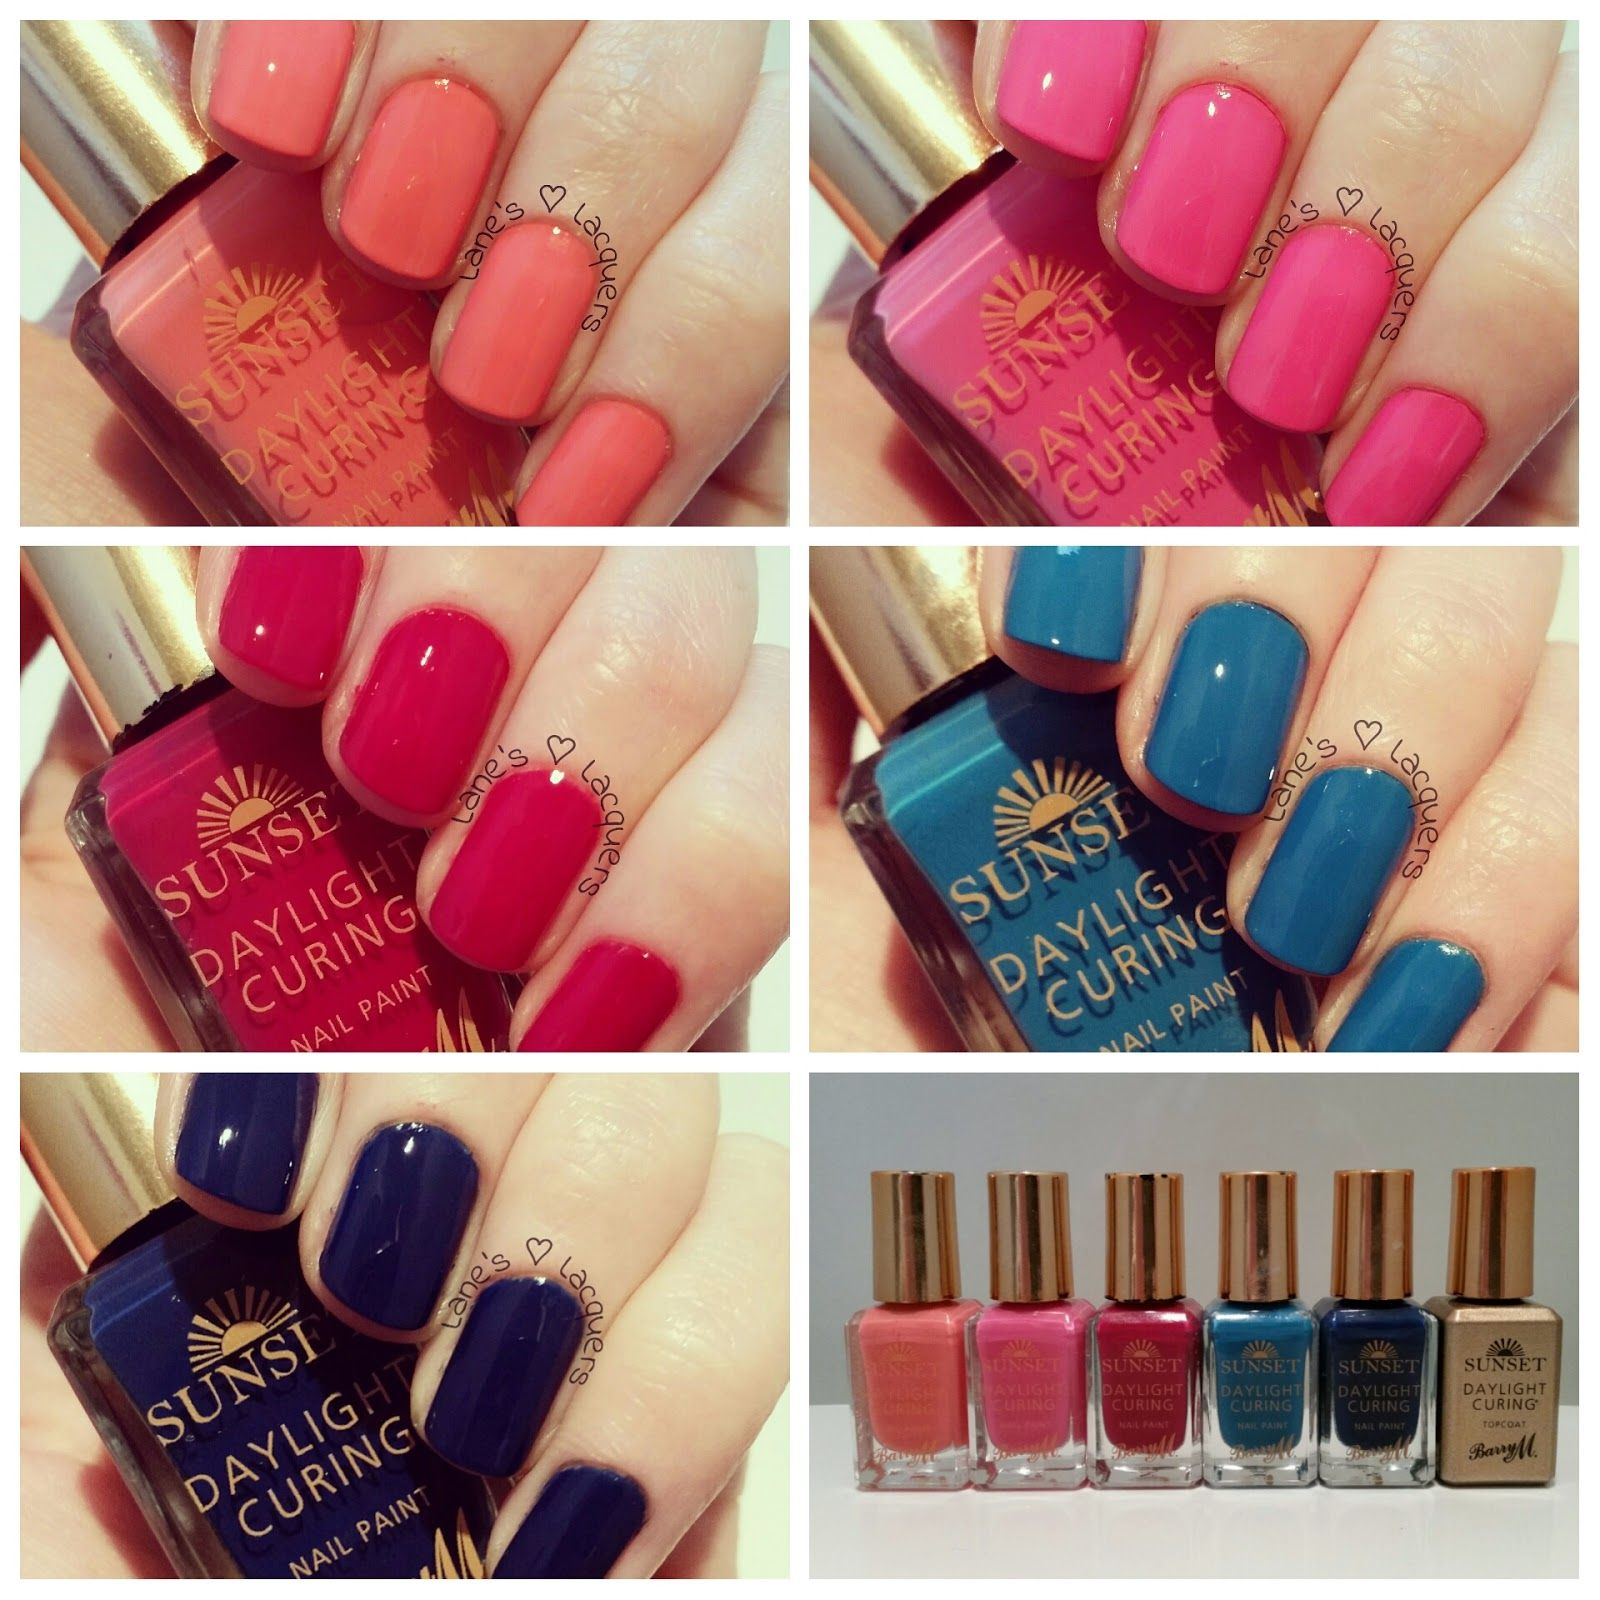 Barry M Sunset Daylight Curing Polish Swatches Barry M Nail Polish, Barry M Nails,